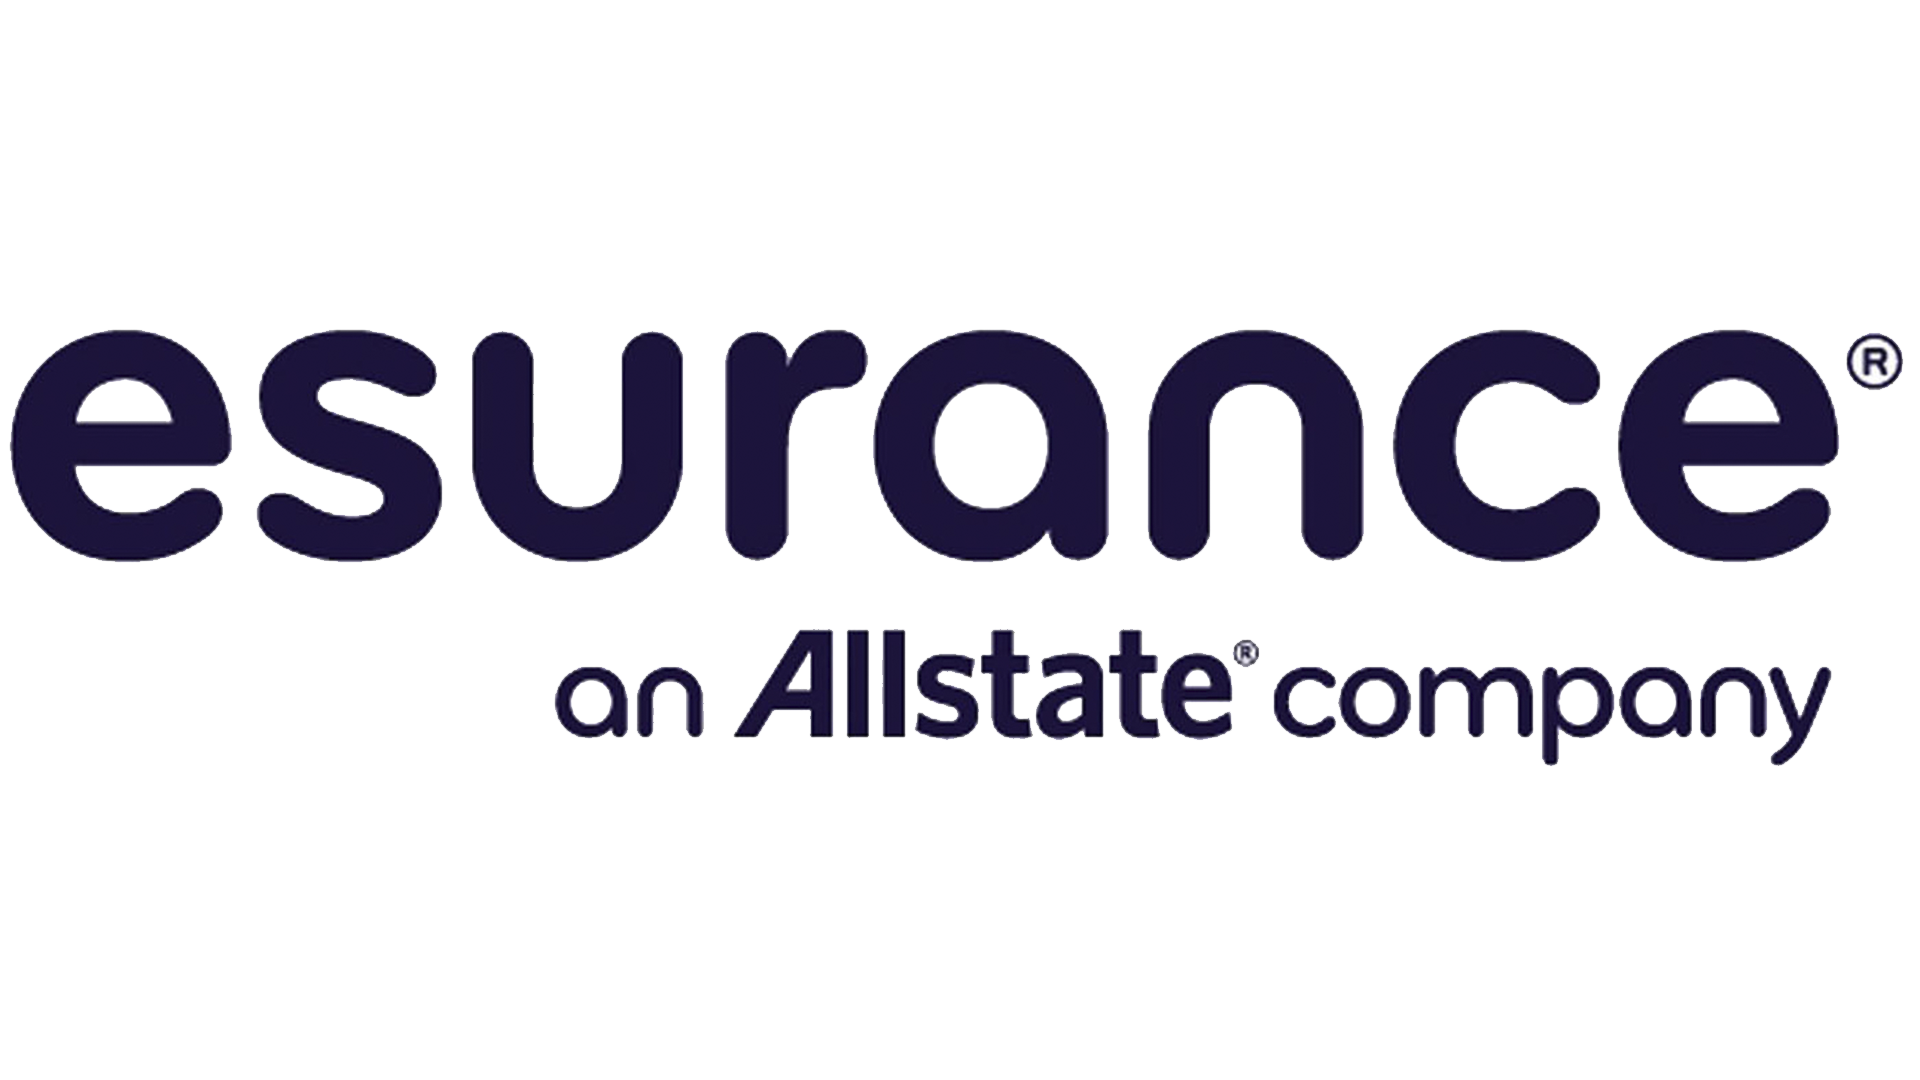 Esurance logo and symbol, meaning, history, PNG